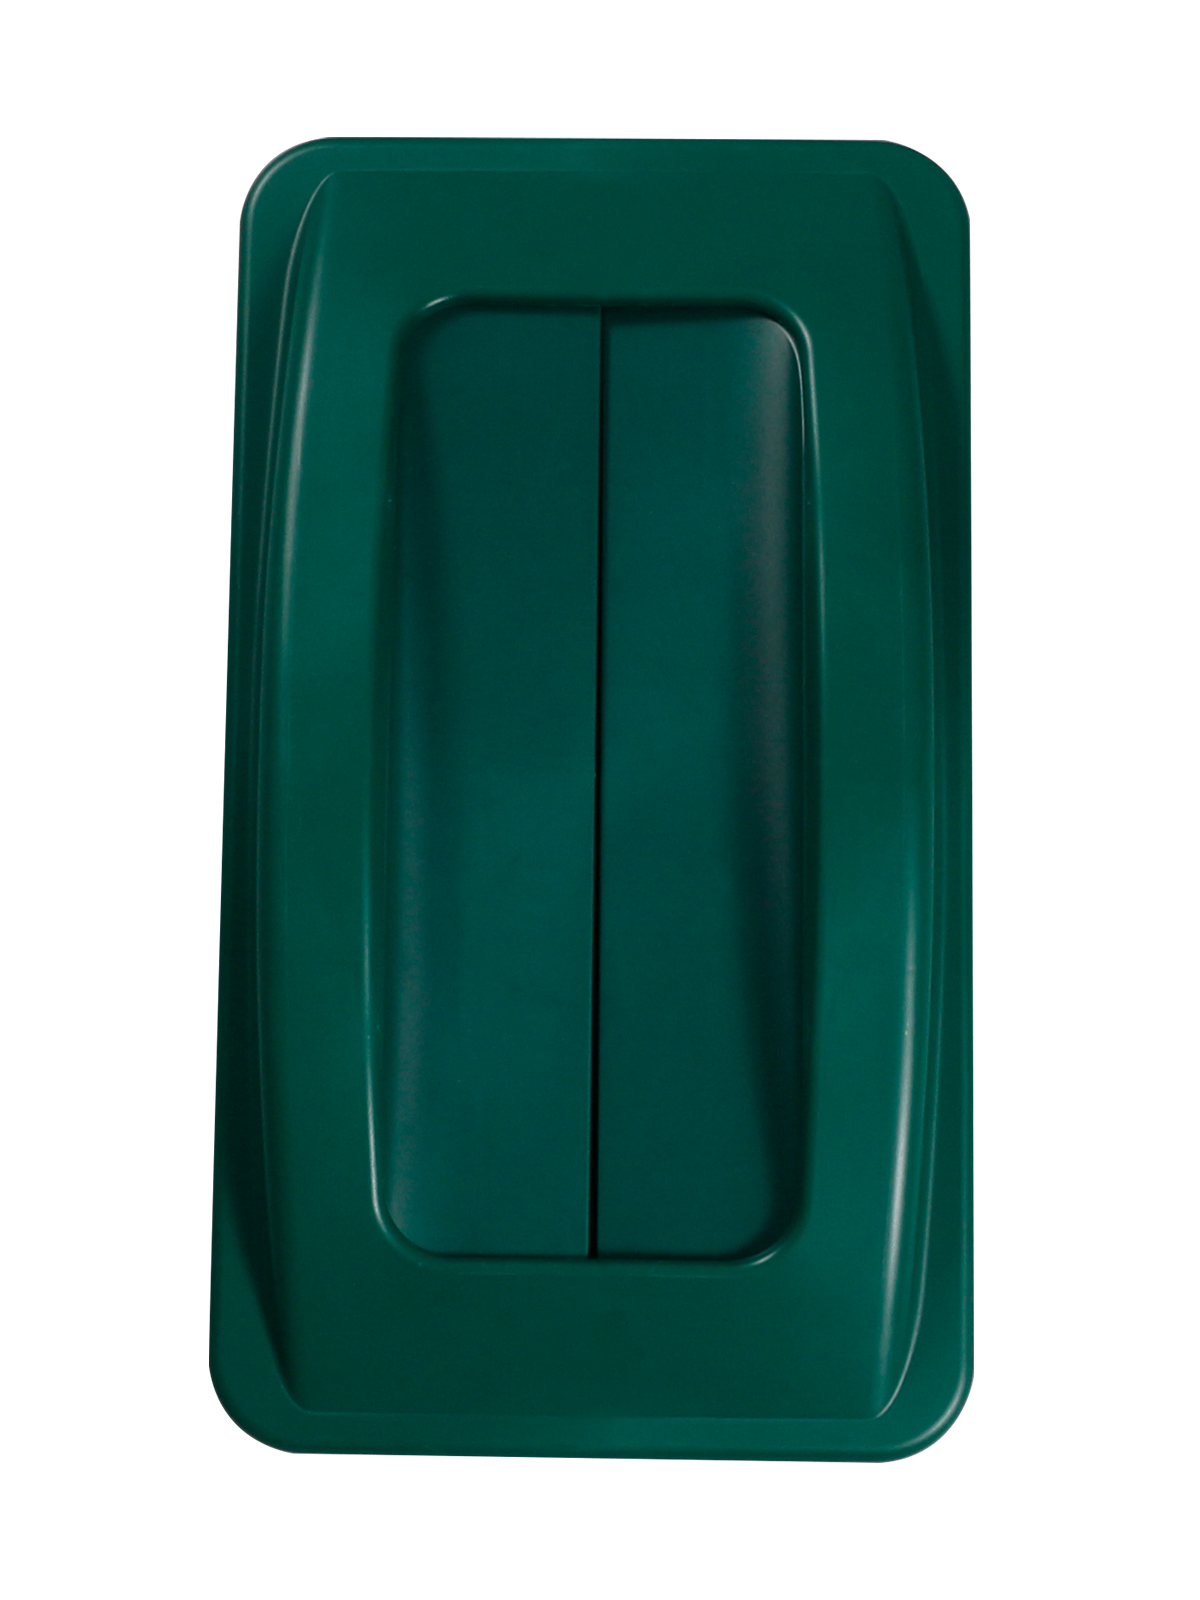 WASTE WATCHER - Single - Lid - Swing - Dark Green